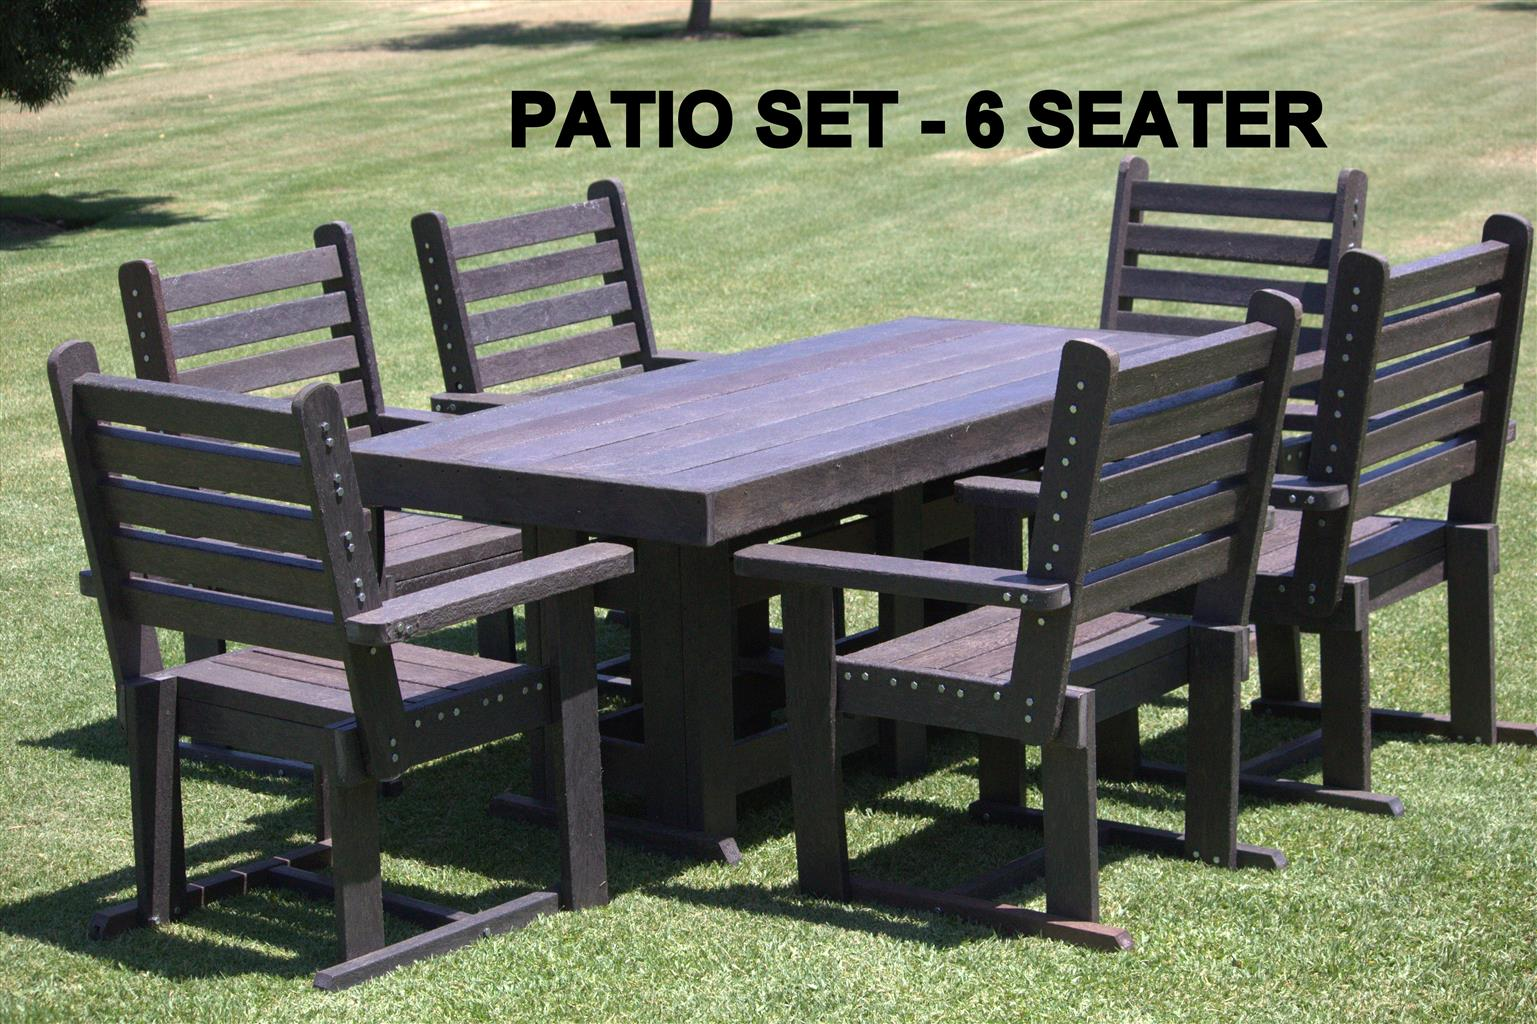 PATIO-, LAPA-, AND HEX SETS